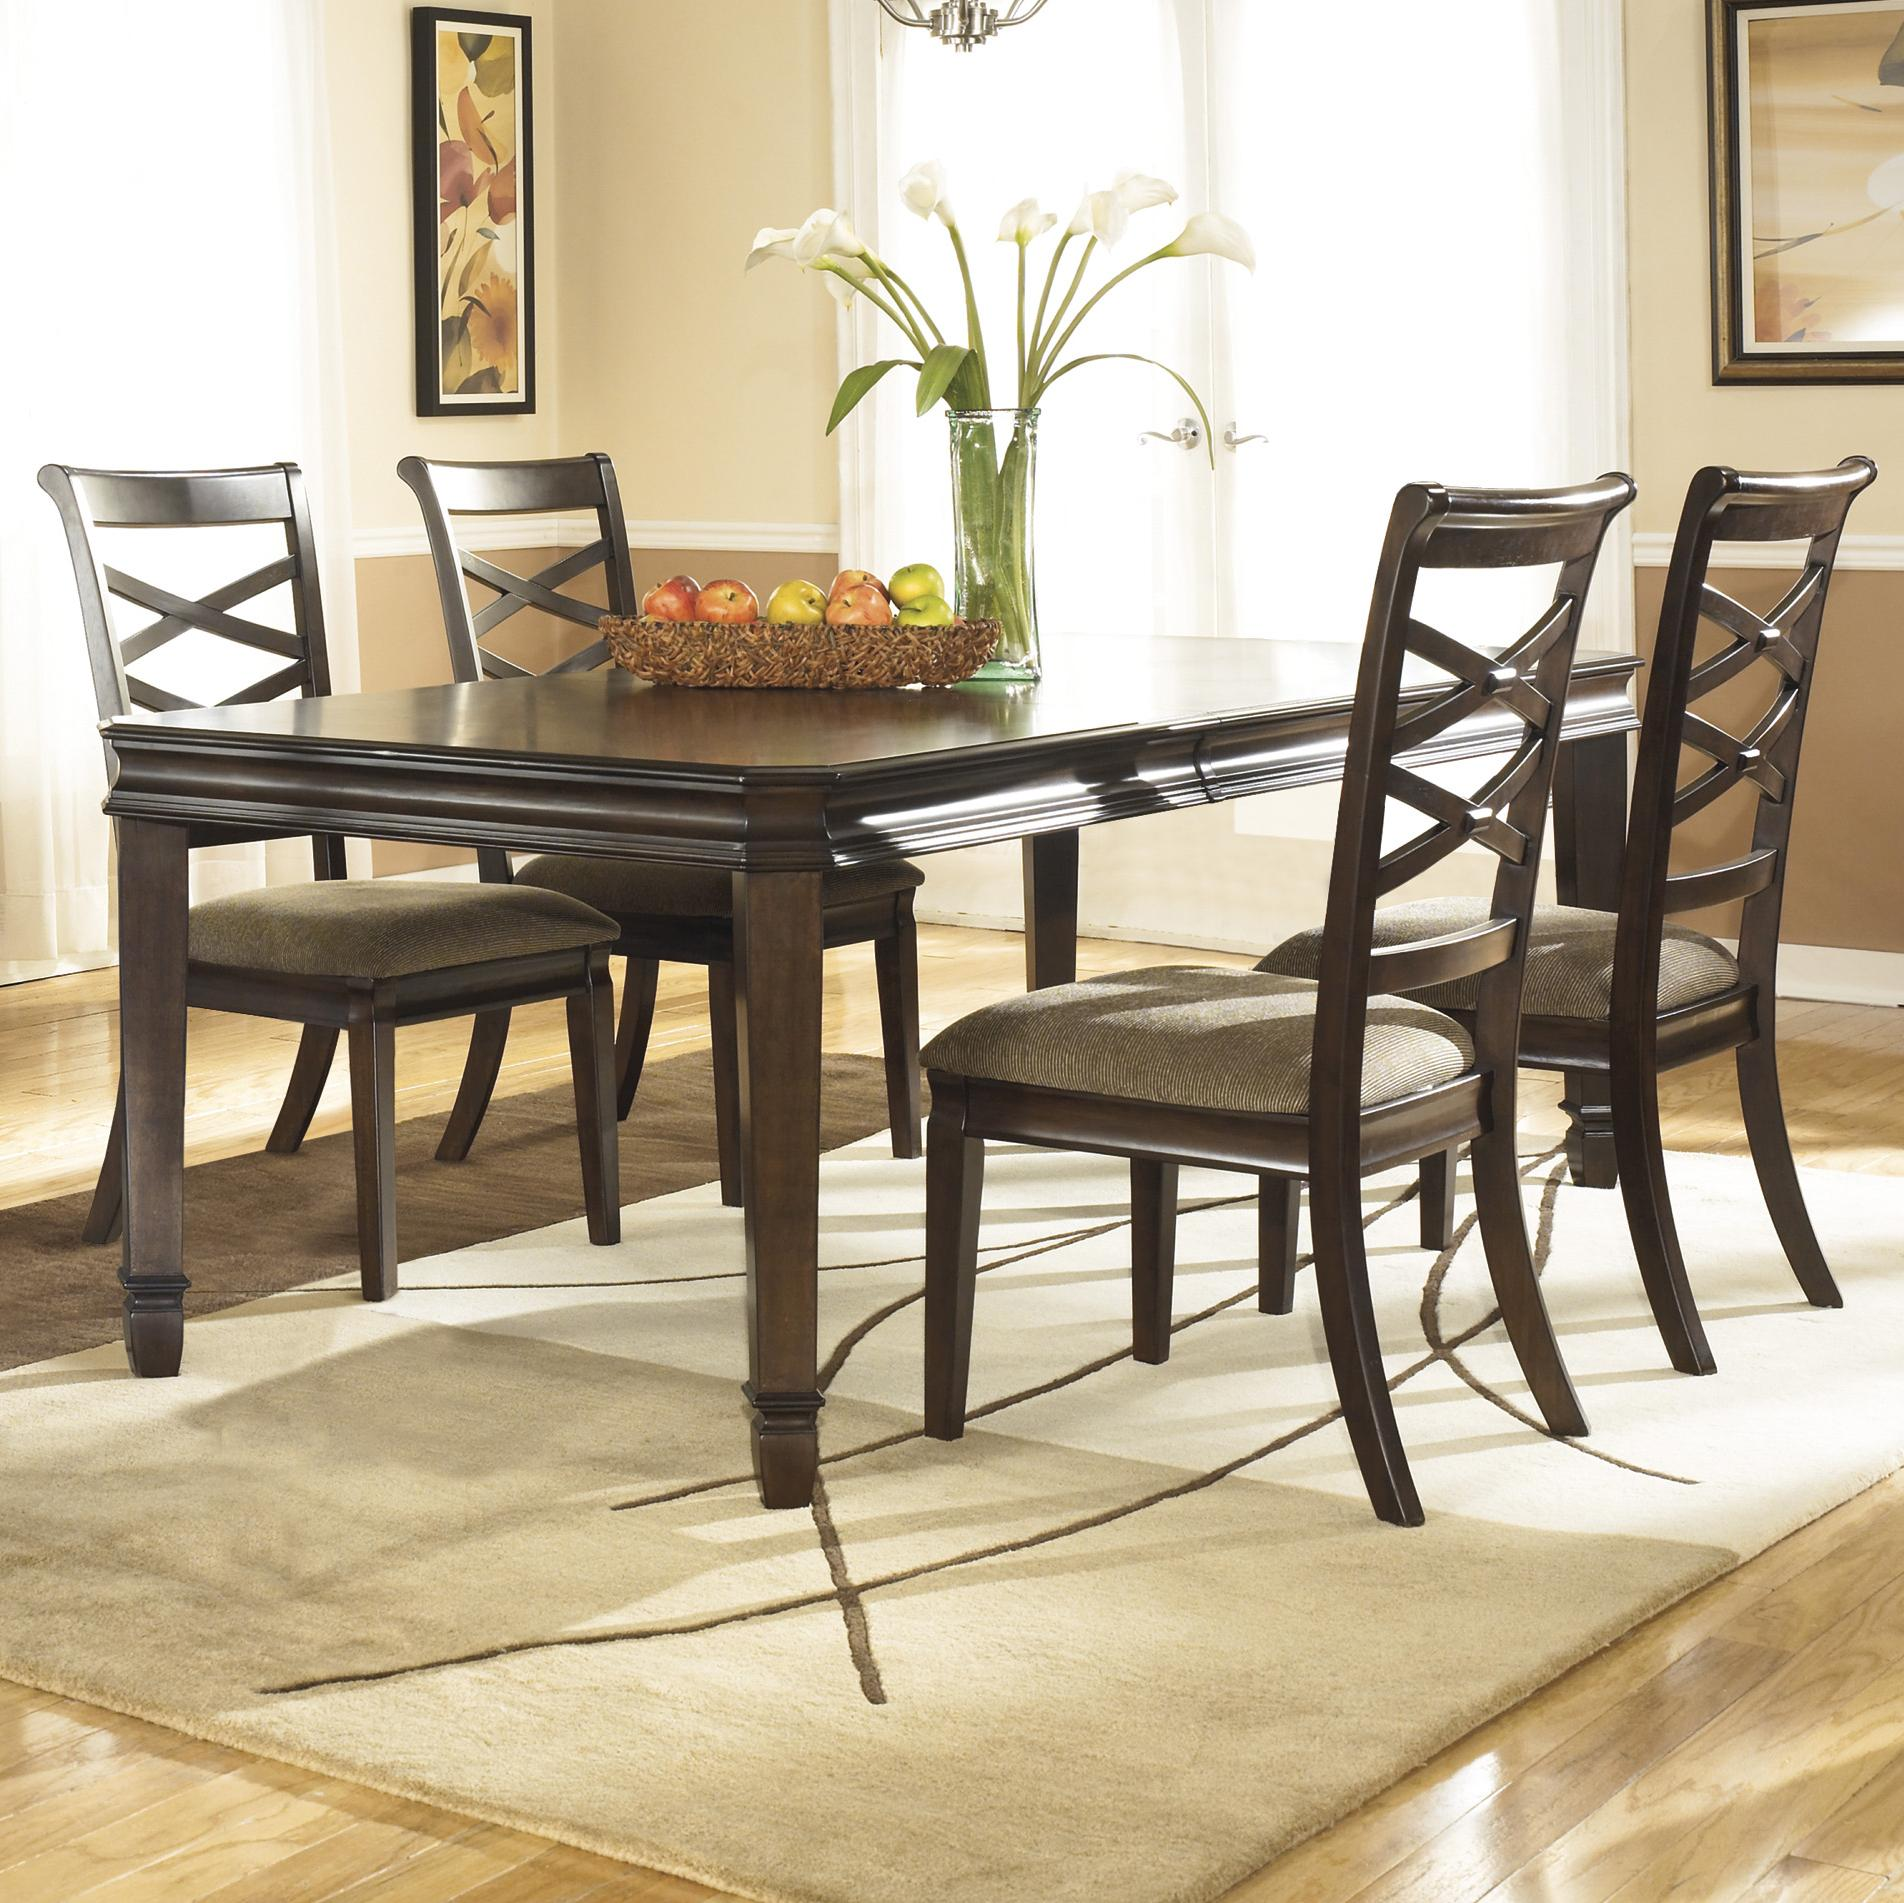 Ashley Furniture Hayley 5 Piece Dining Set - Item Number: D480-35+4x01